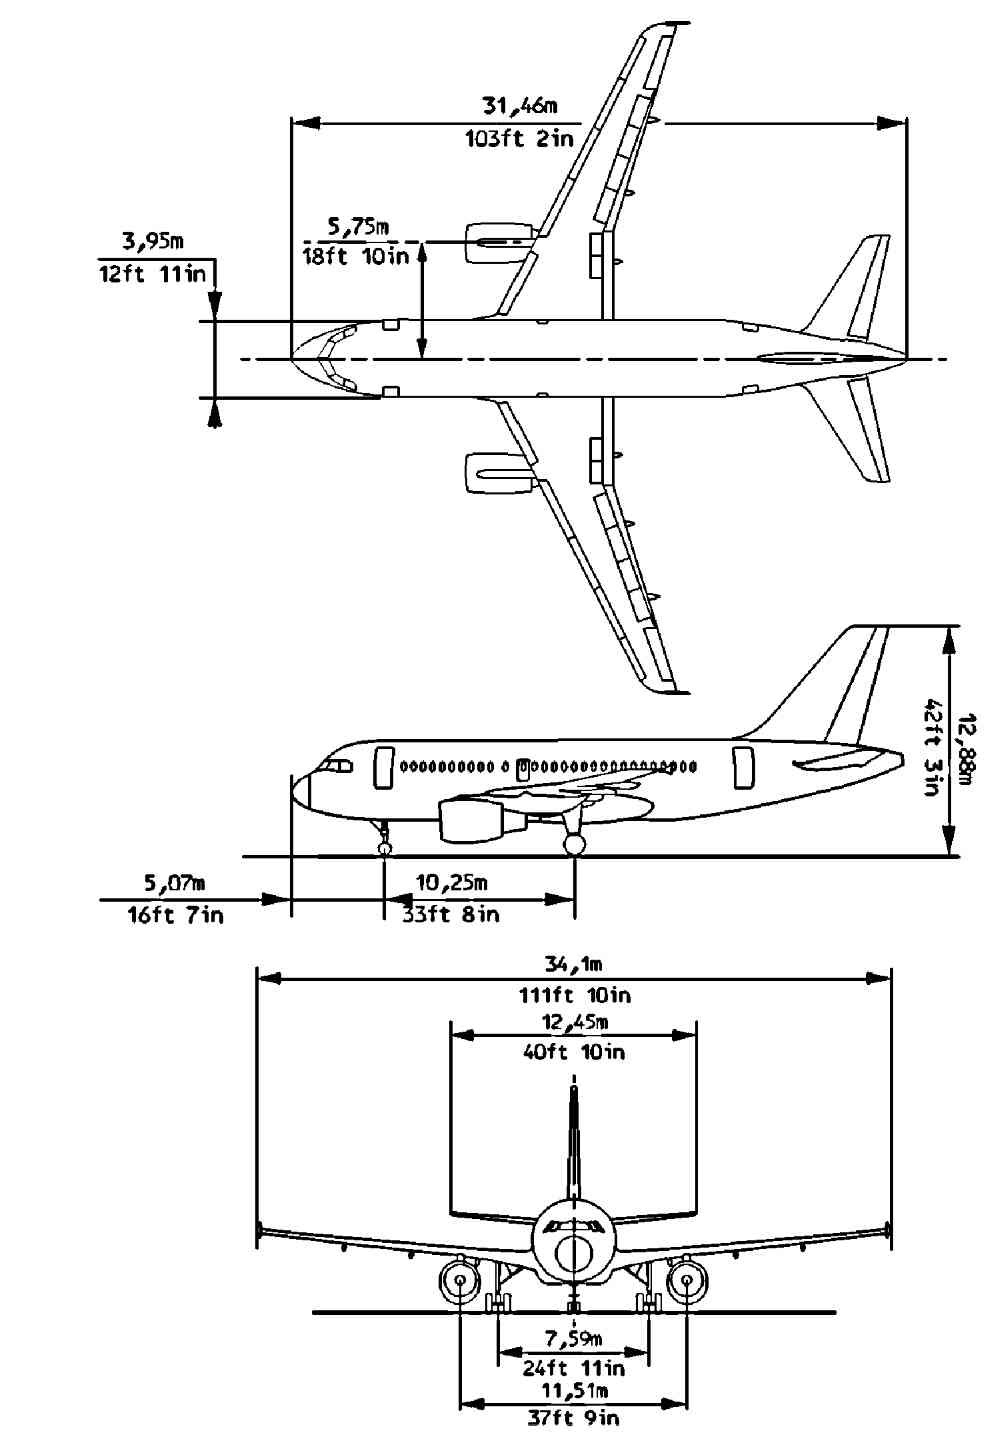 airbus a320 dimensions pictures to pin on pinterest